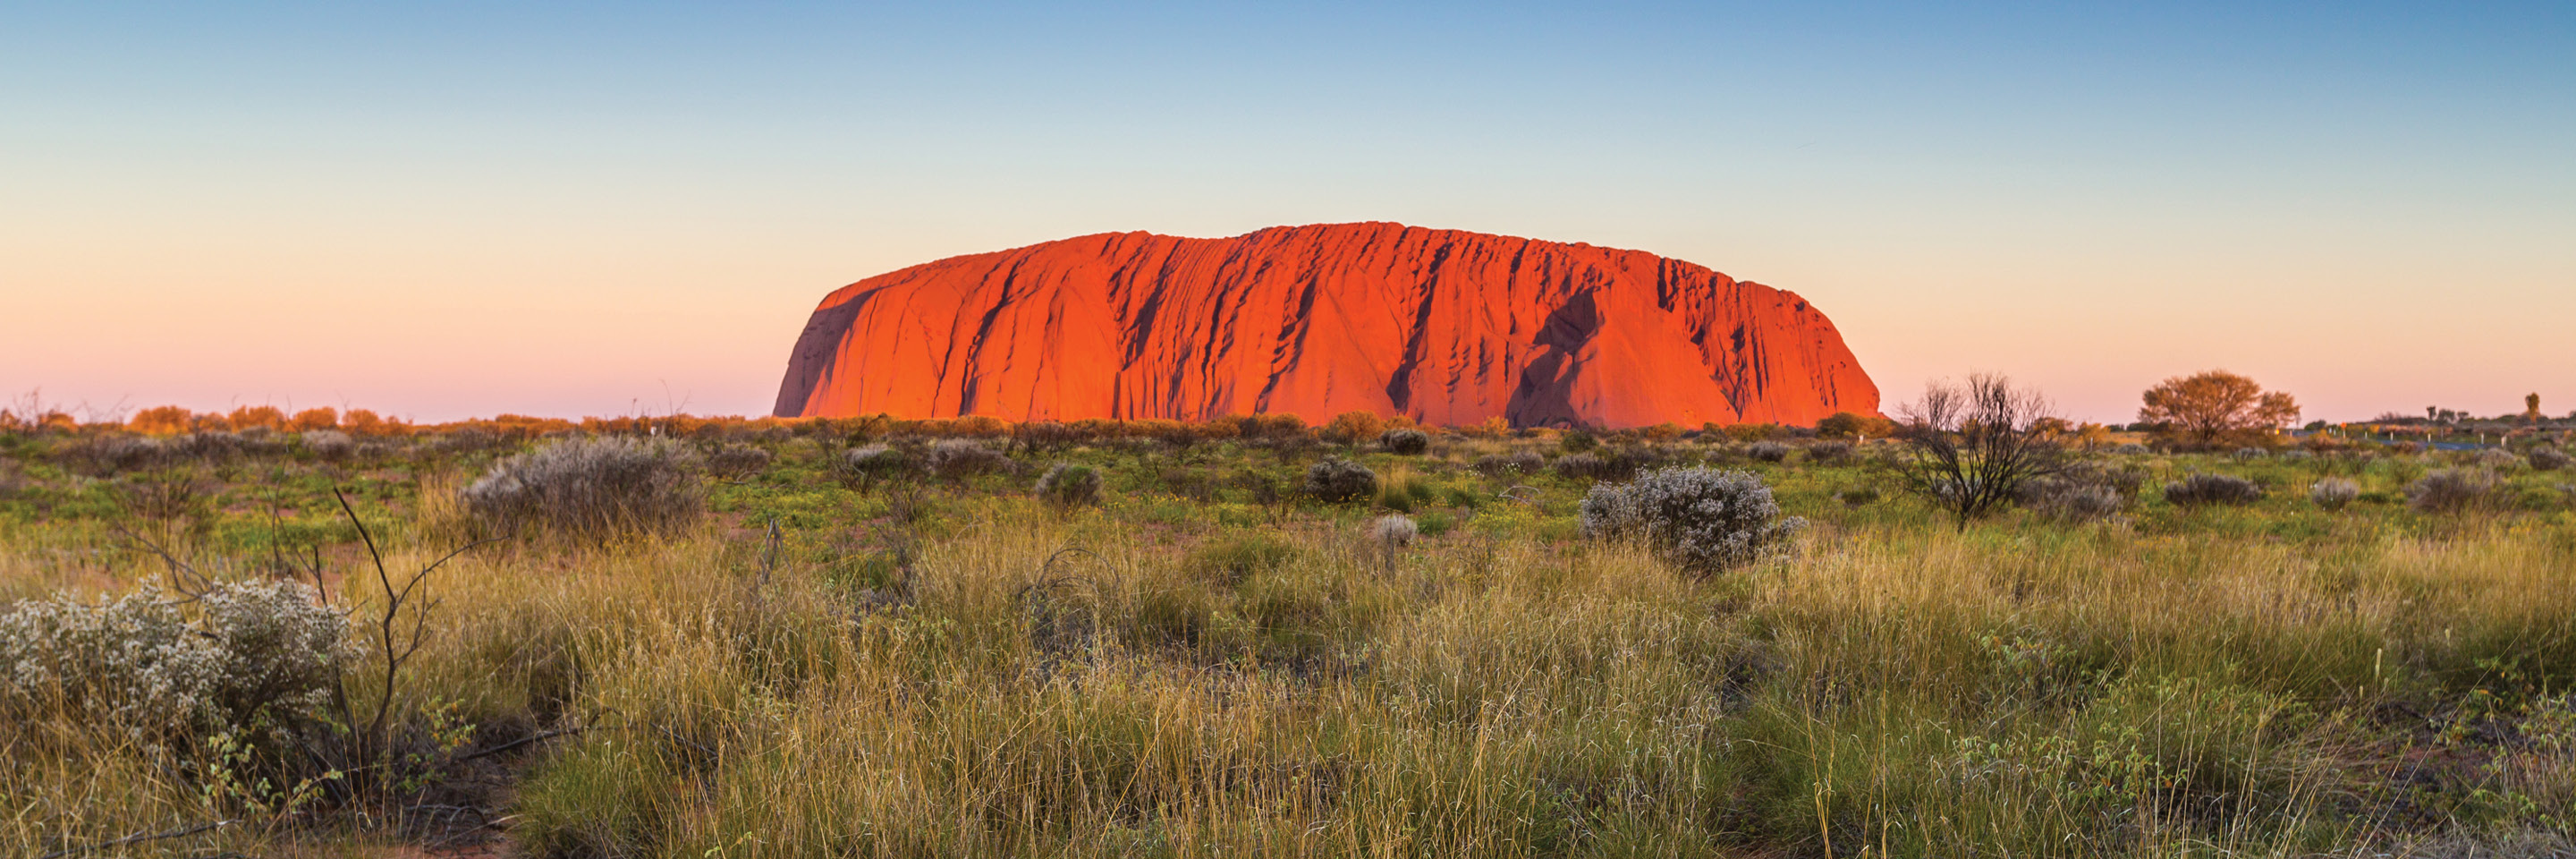 Great Sights of Australia with the Outback